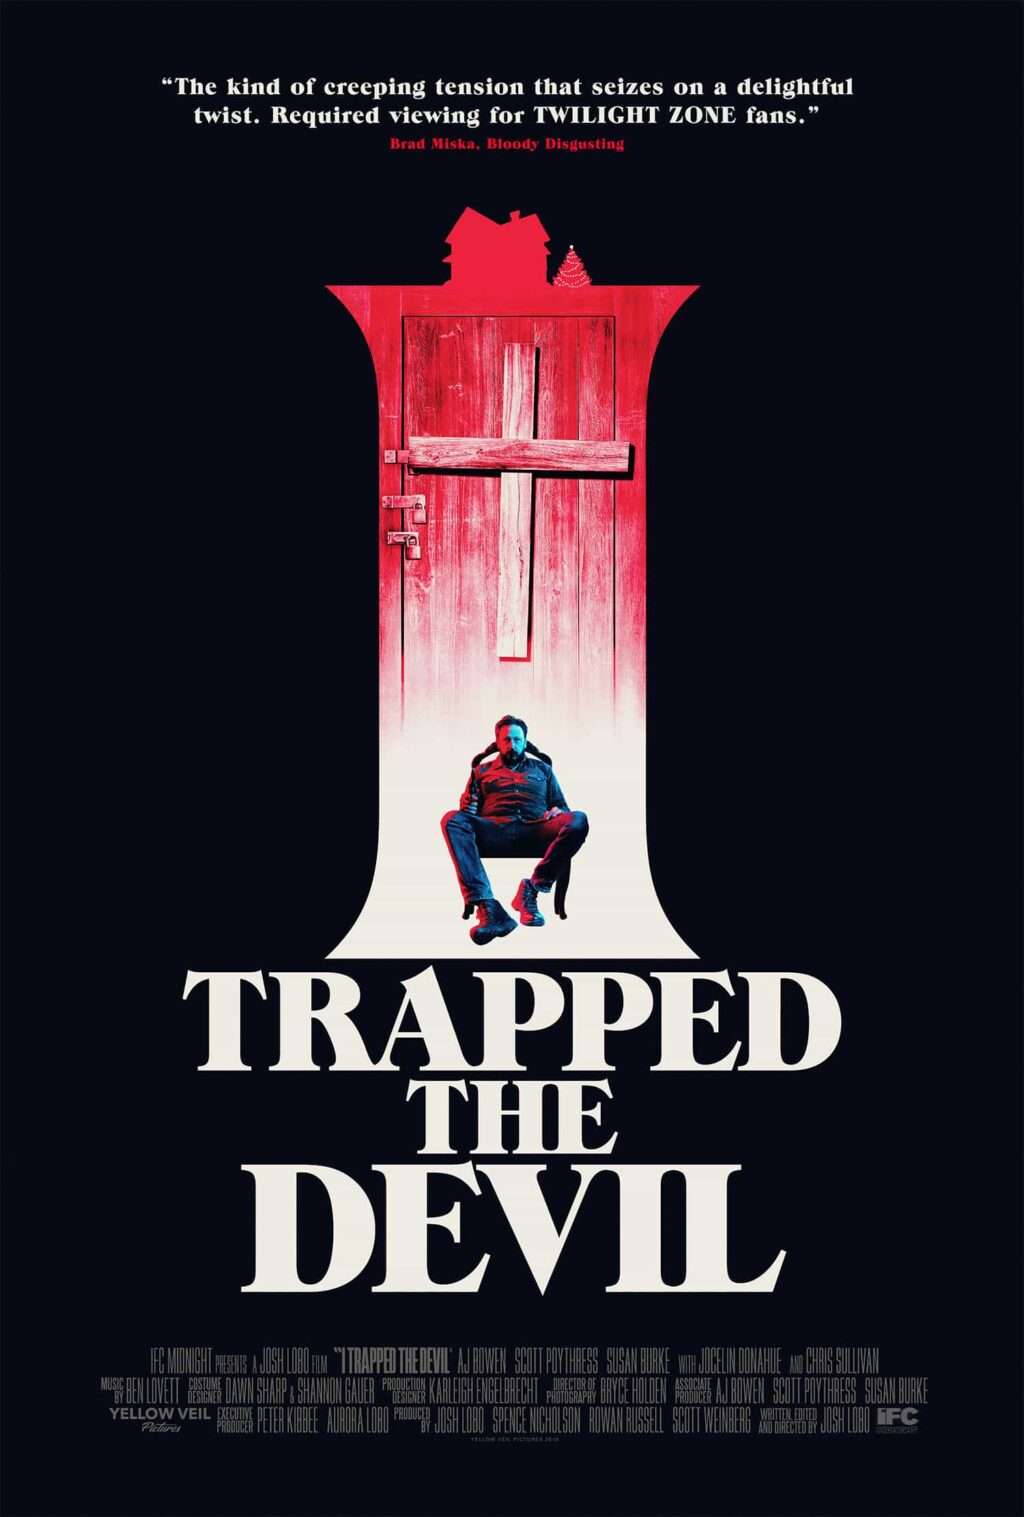 I Trapped the Devil Poster 1024x1517 - IFC Midnight Presents I TRAPPED THE DEVIL in April